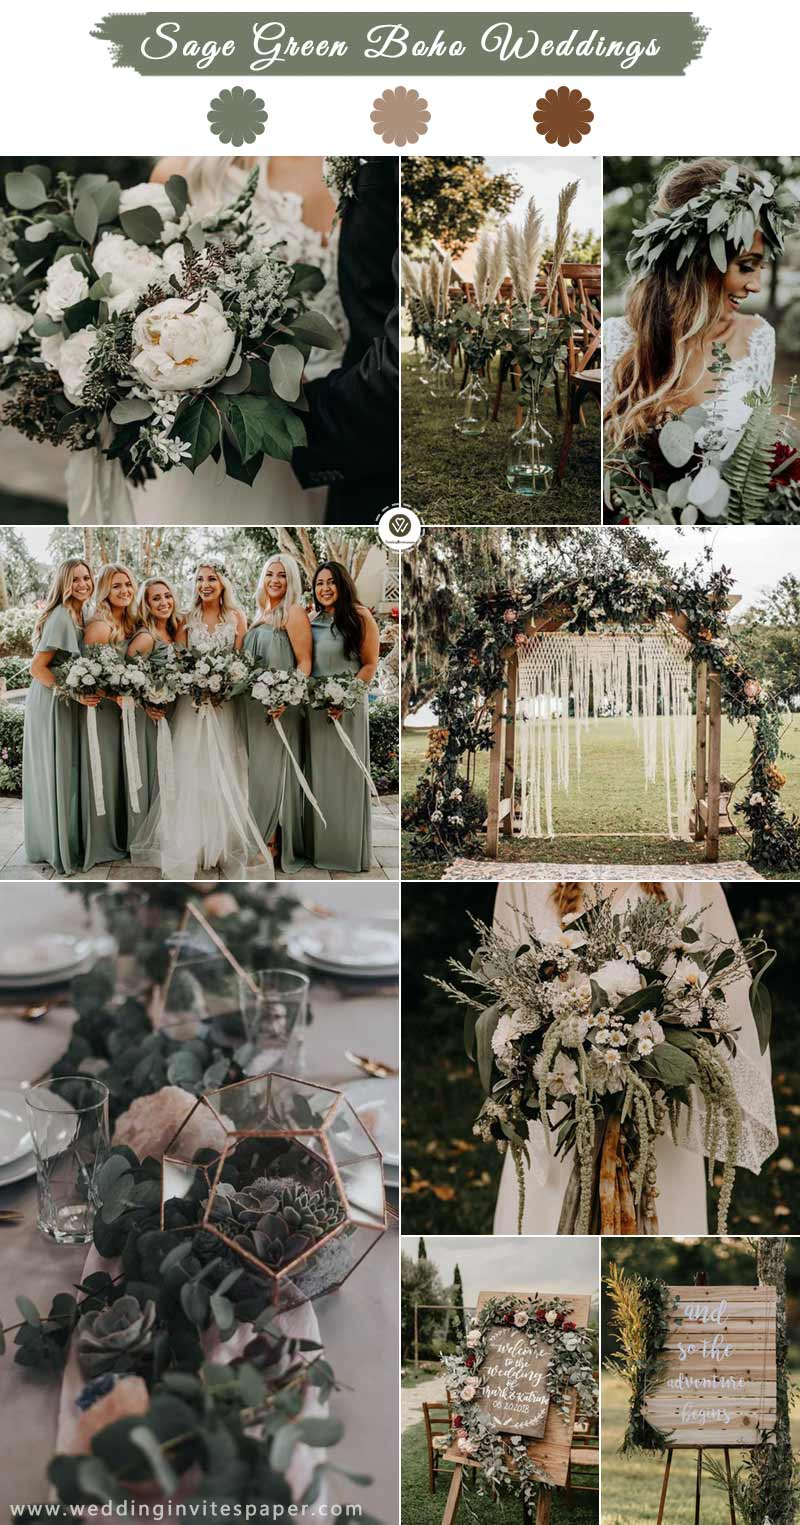 Sage-Green-Boho-Weddings.jpg